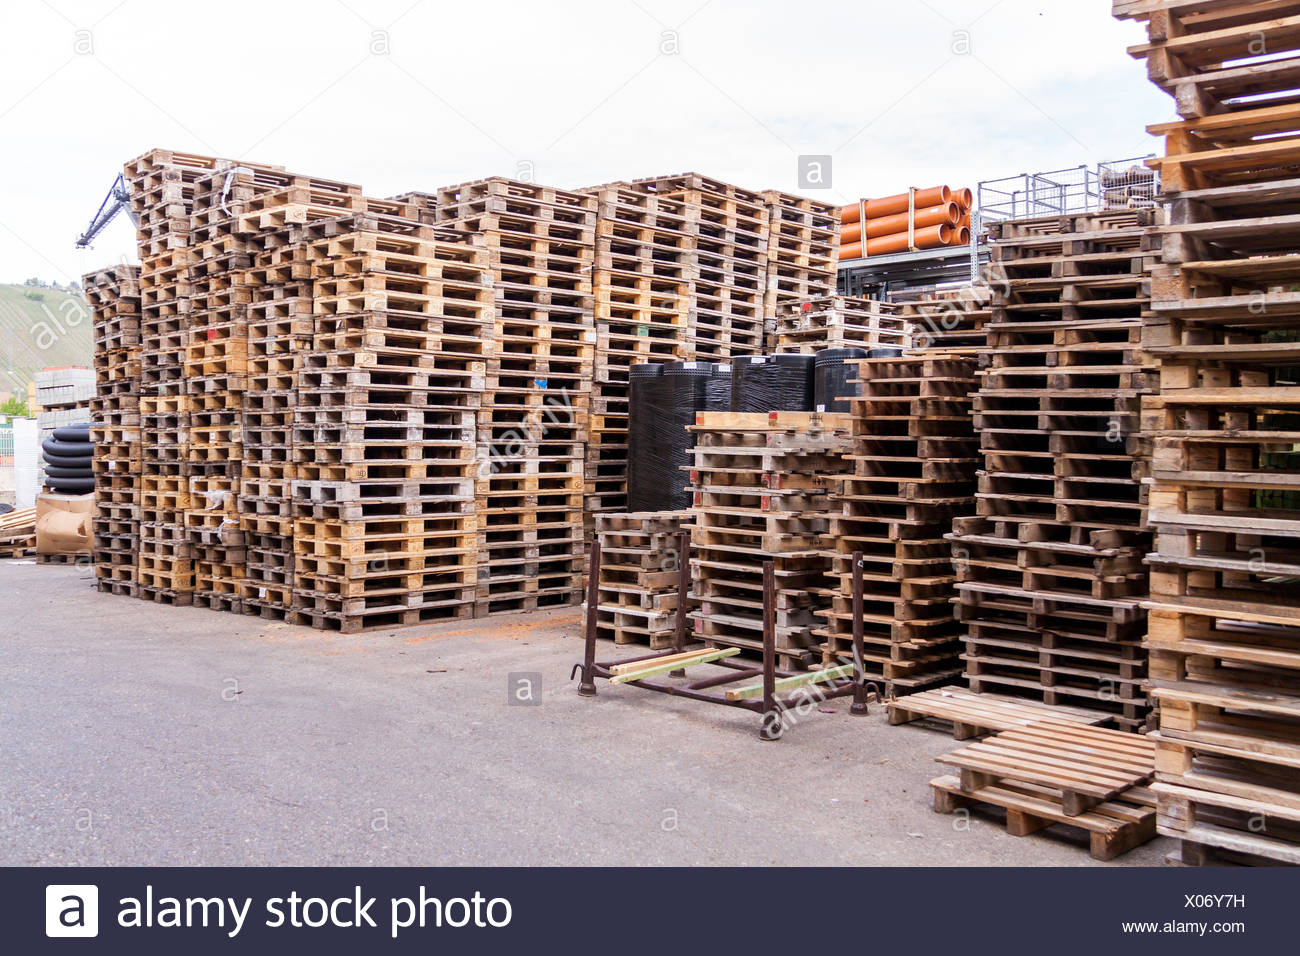 Holz Stapeln Stock Photos & Holz Stapeln Stock Images - Alamy